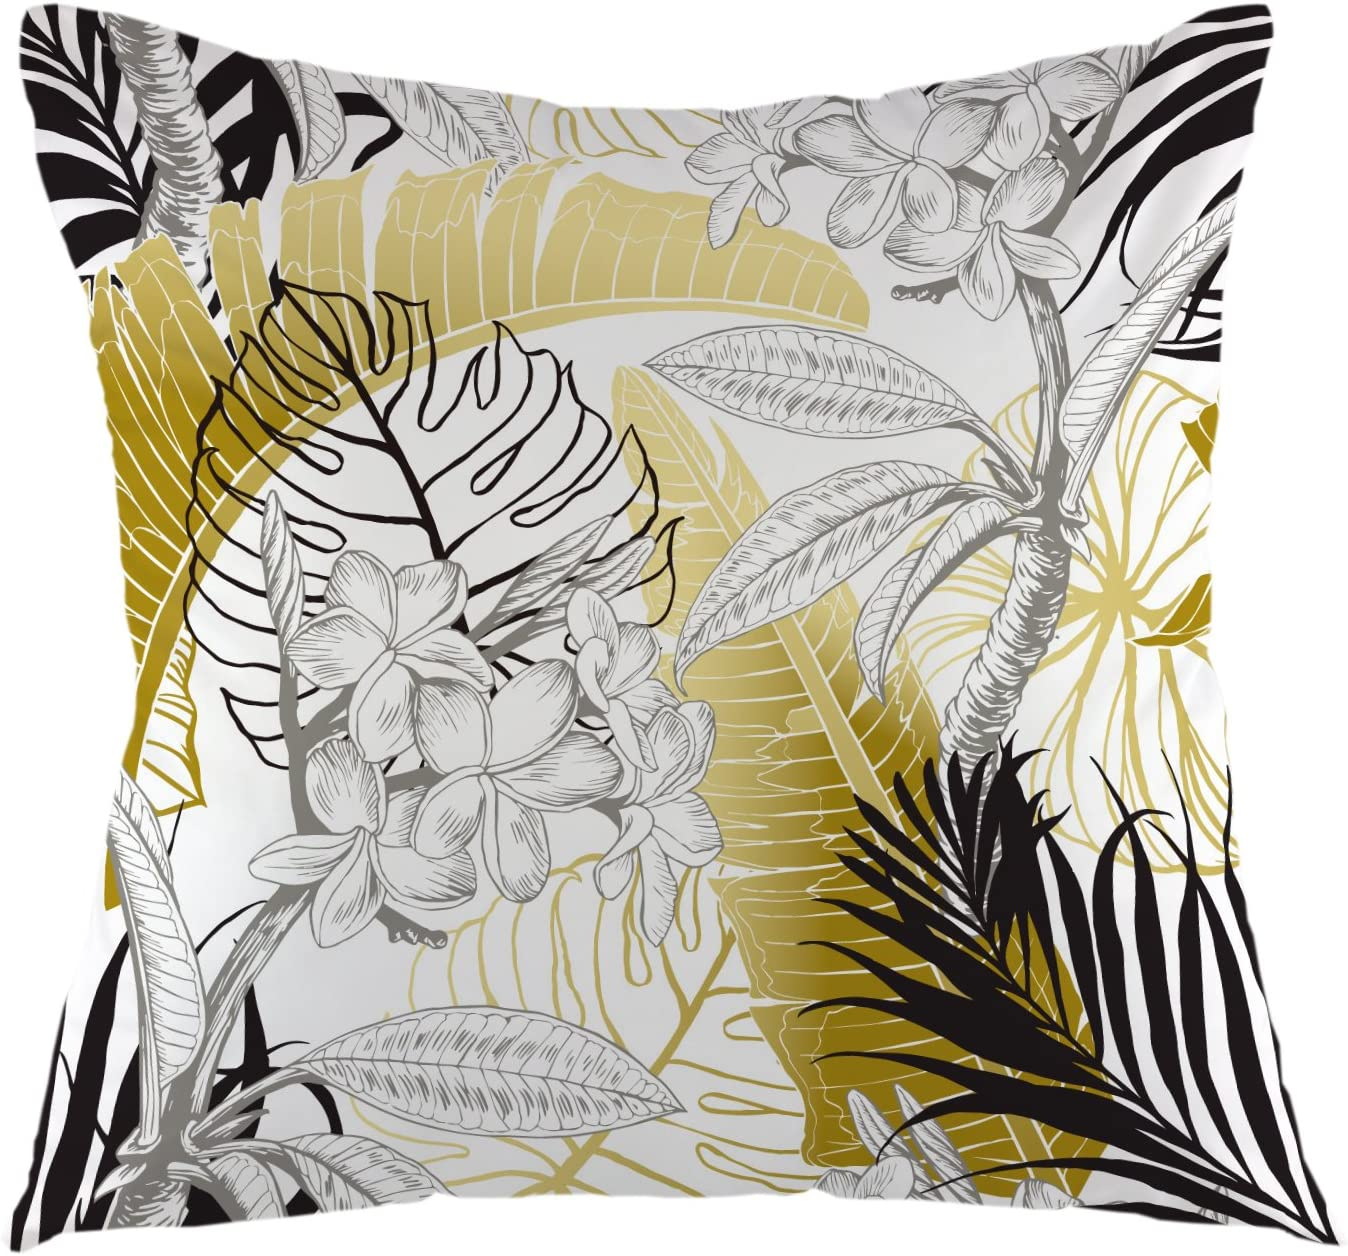 "oFloral Tropical Monstera Throw Pillow Cover with Palm Tree Leaves Pillow Case Square Cushion Cover for Sofa Couch Home Car Bedroom Living Room Decorative 18"" x 18"" Yellow Black White"